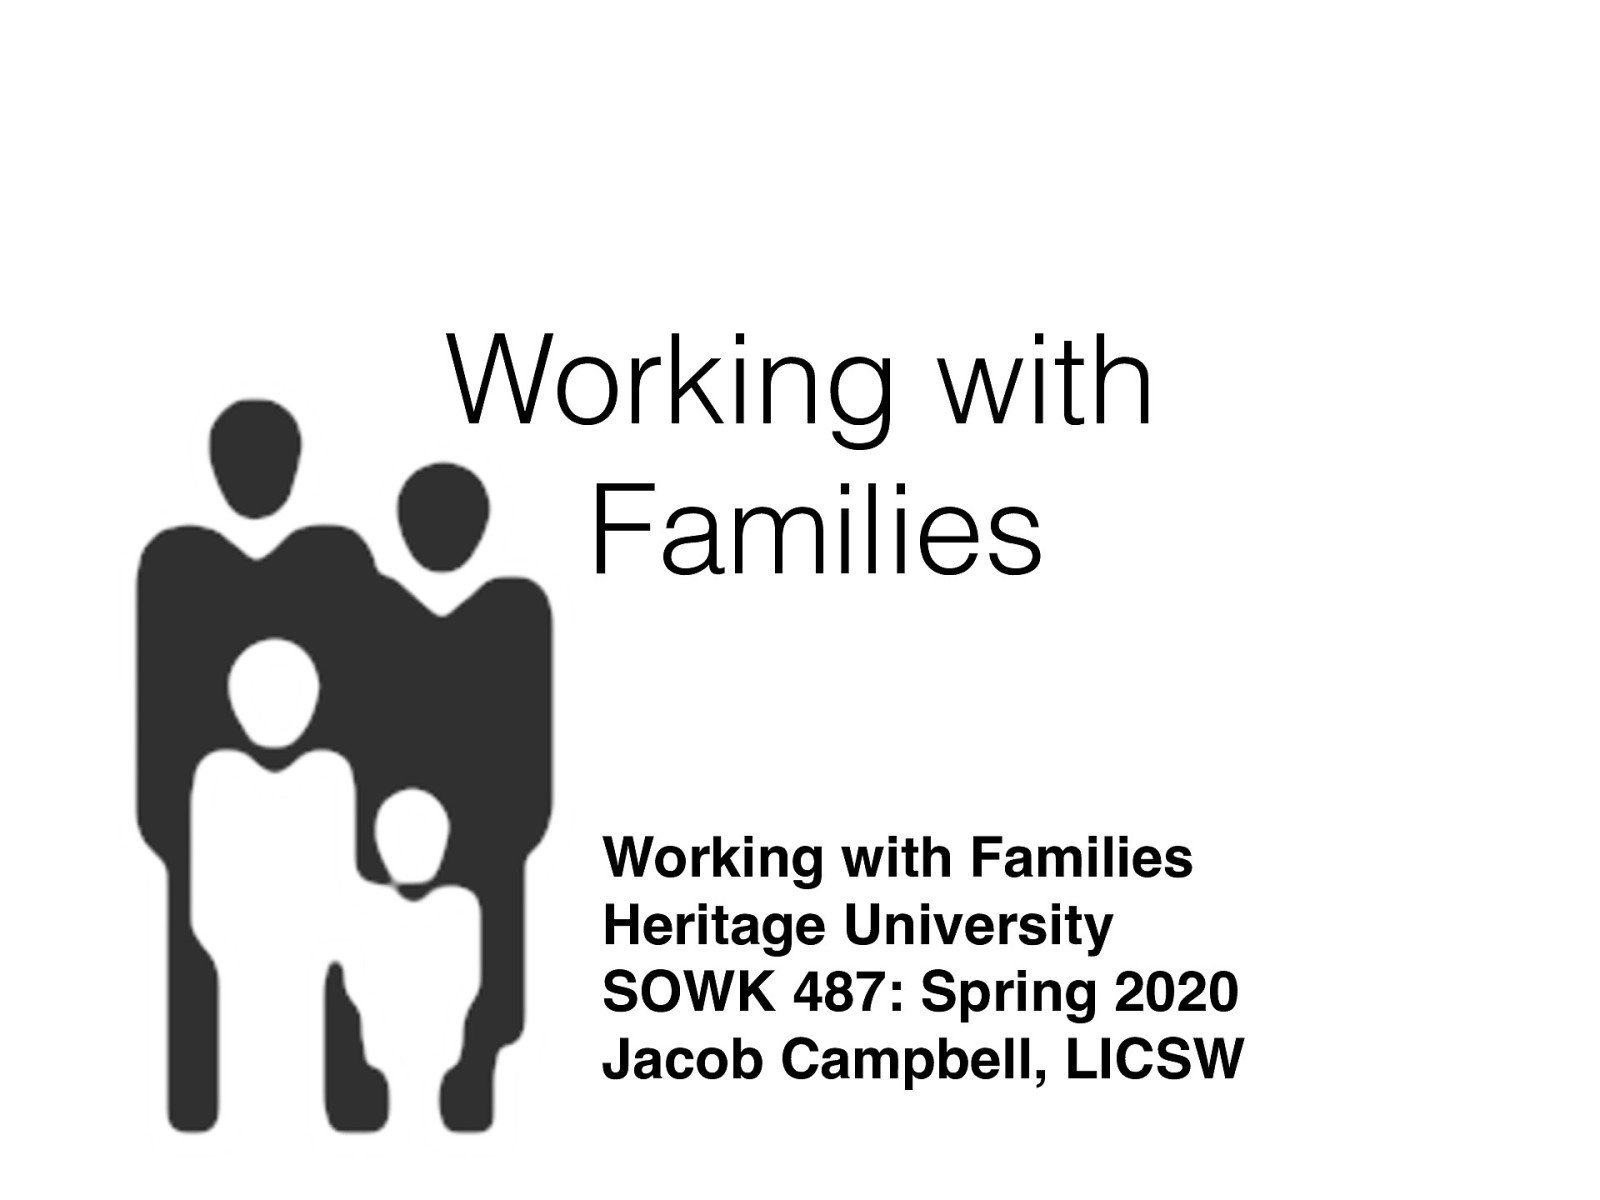 Week 11 - Working with Families